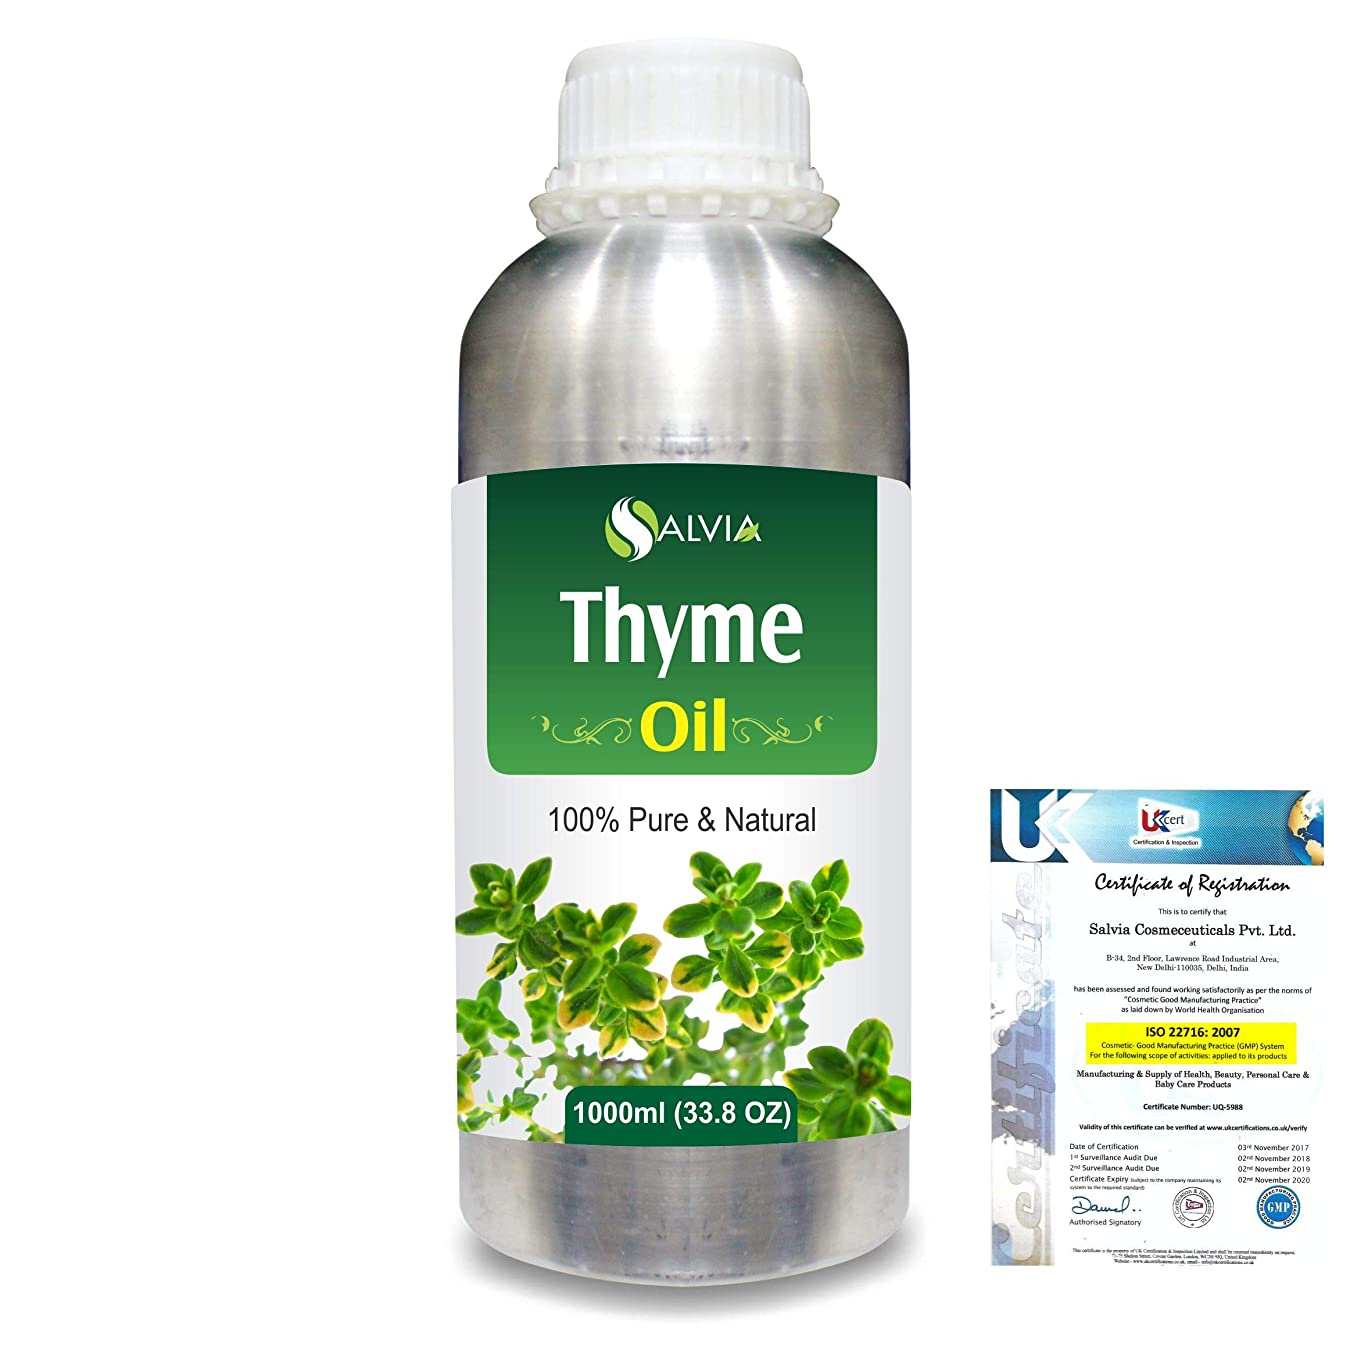 デモンストレーションヒューズ本Thyme (Thymus vulgaris) 100% Natural Pure Essential Oil 1000ml/33.8fl.oz.